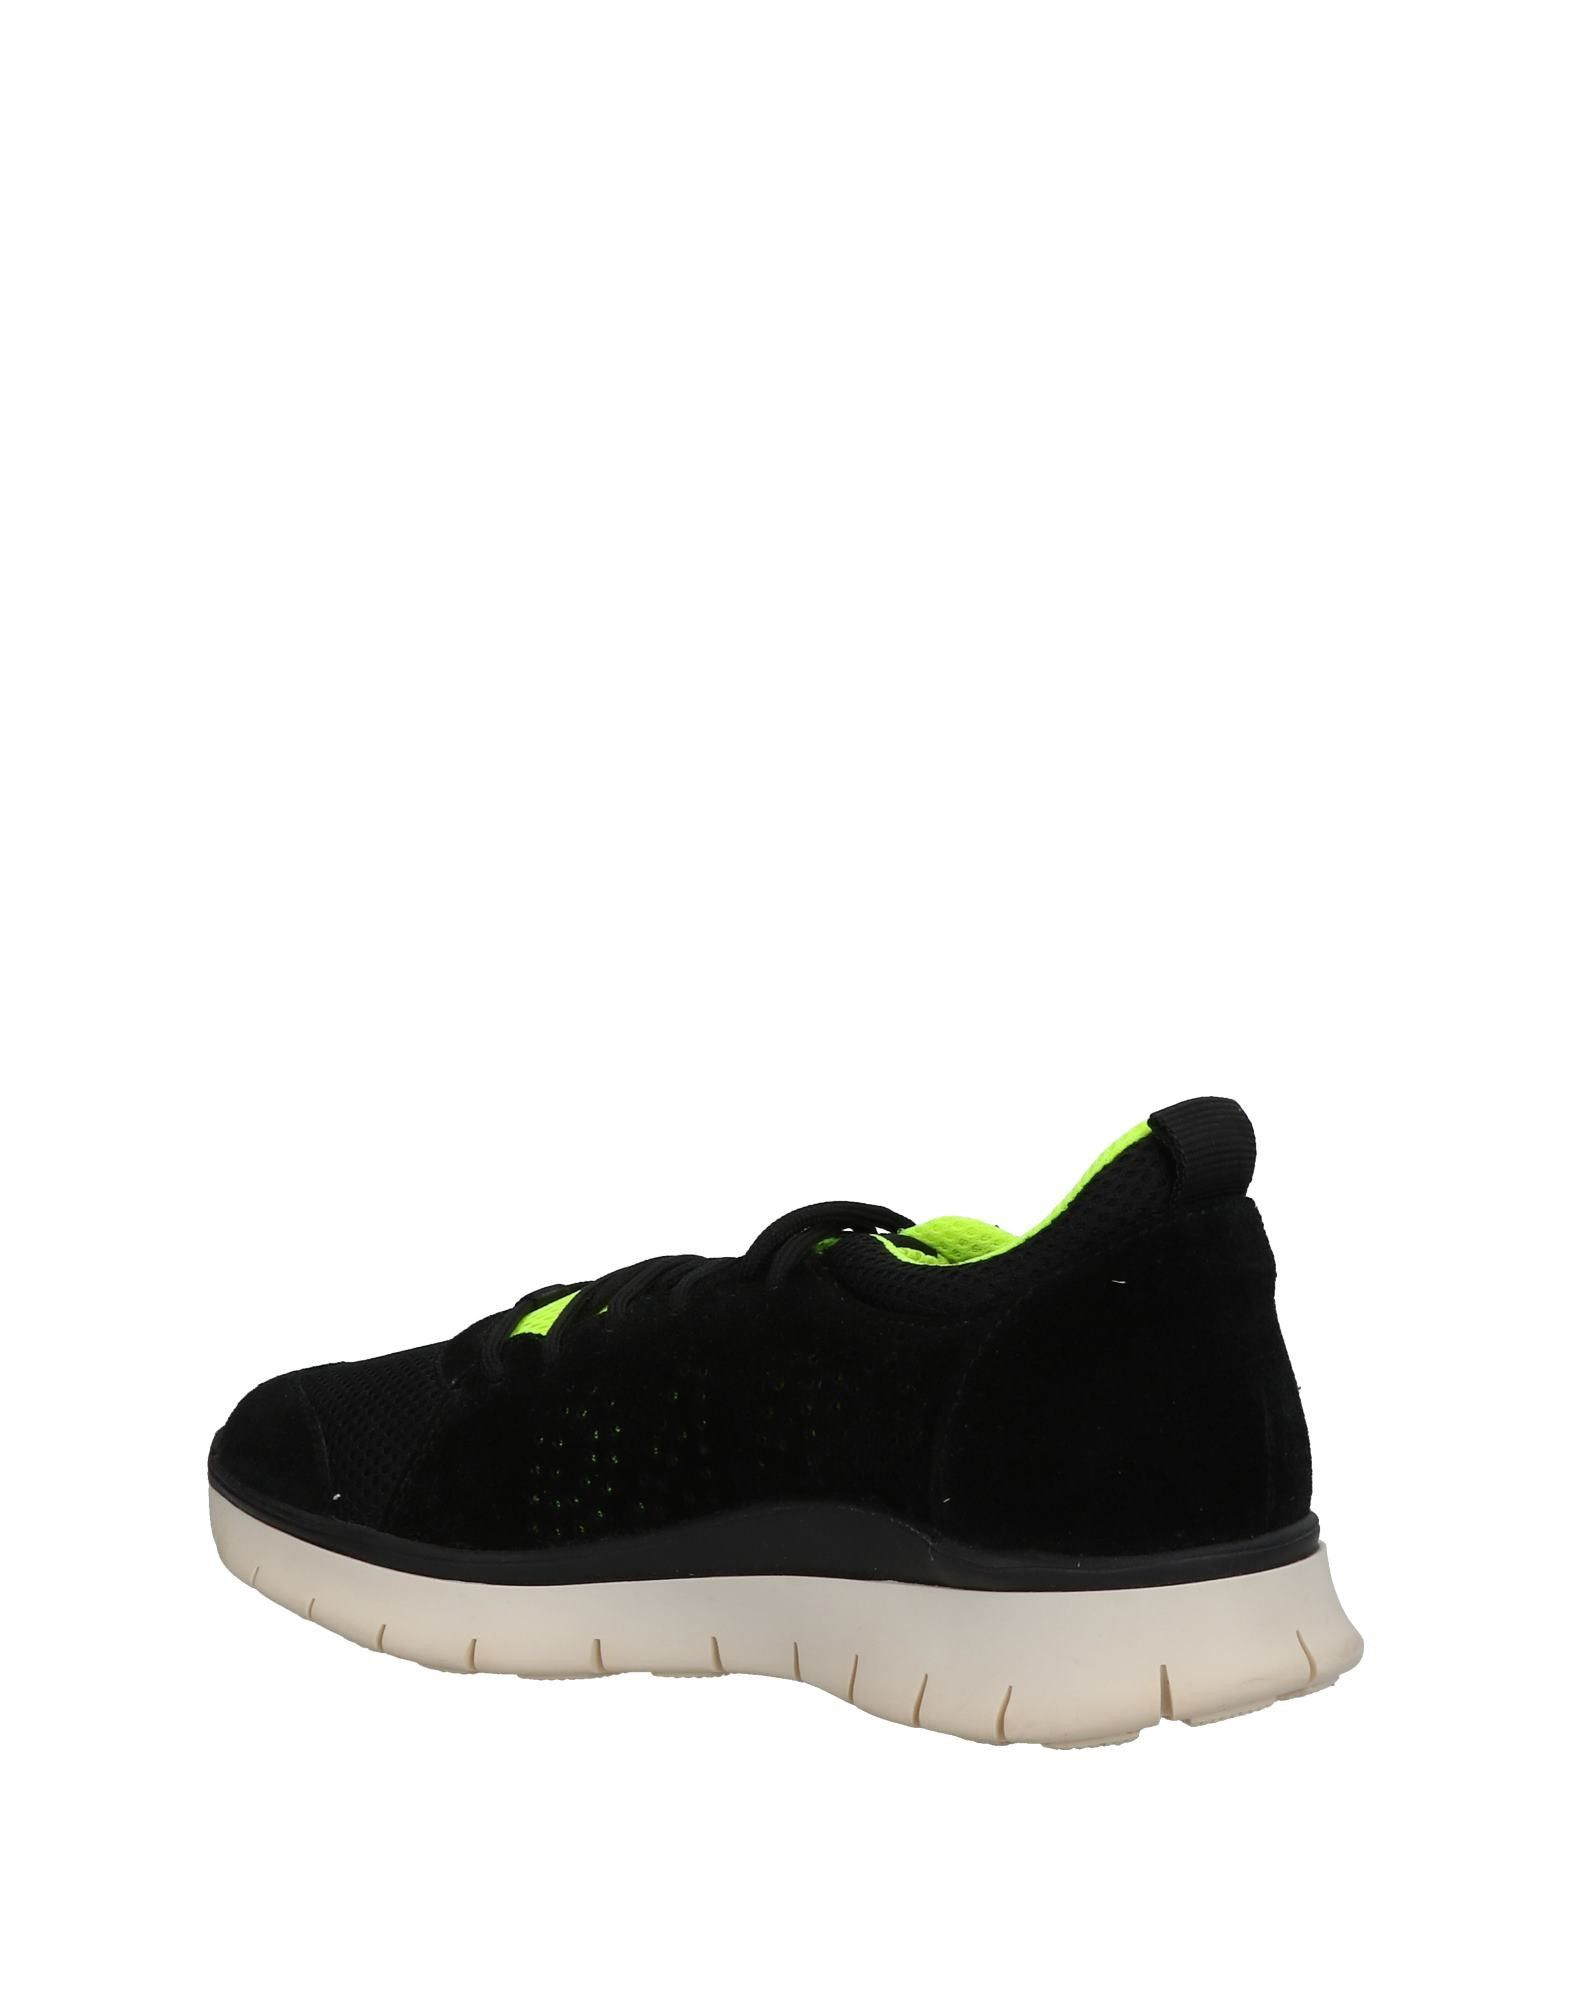 Moda Sneakers P448 Donna - 11421187NF